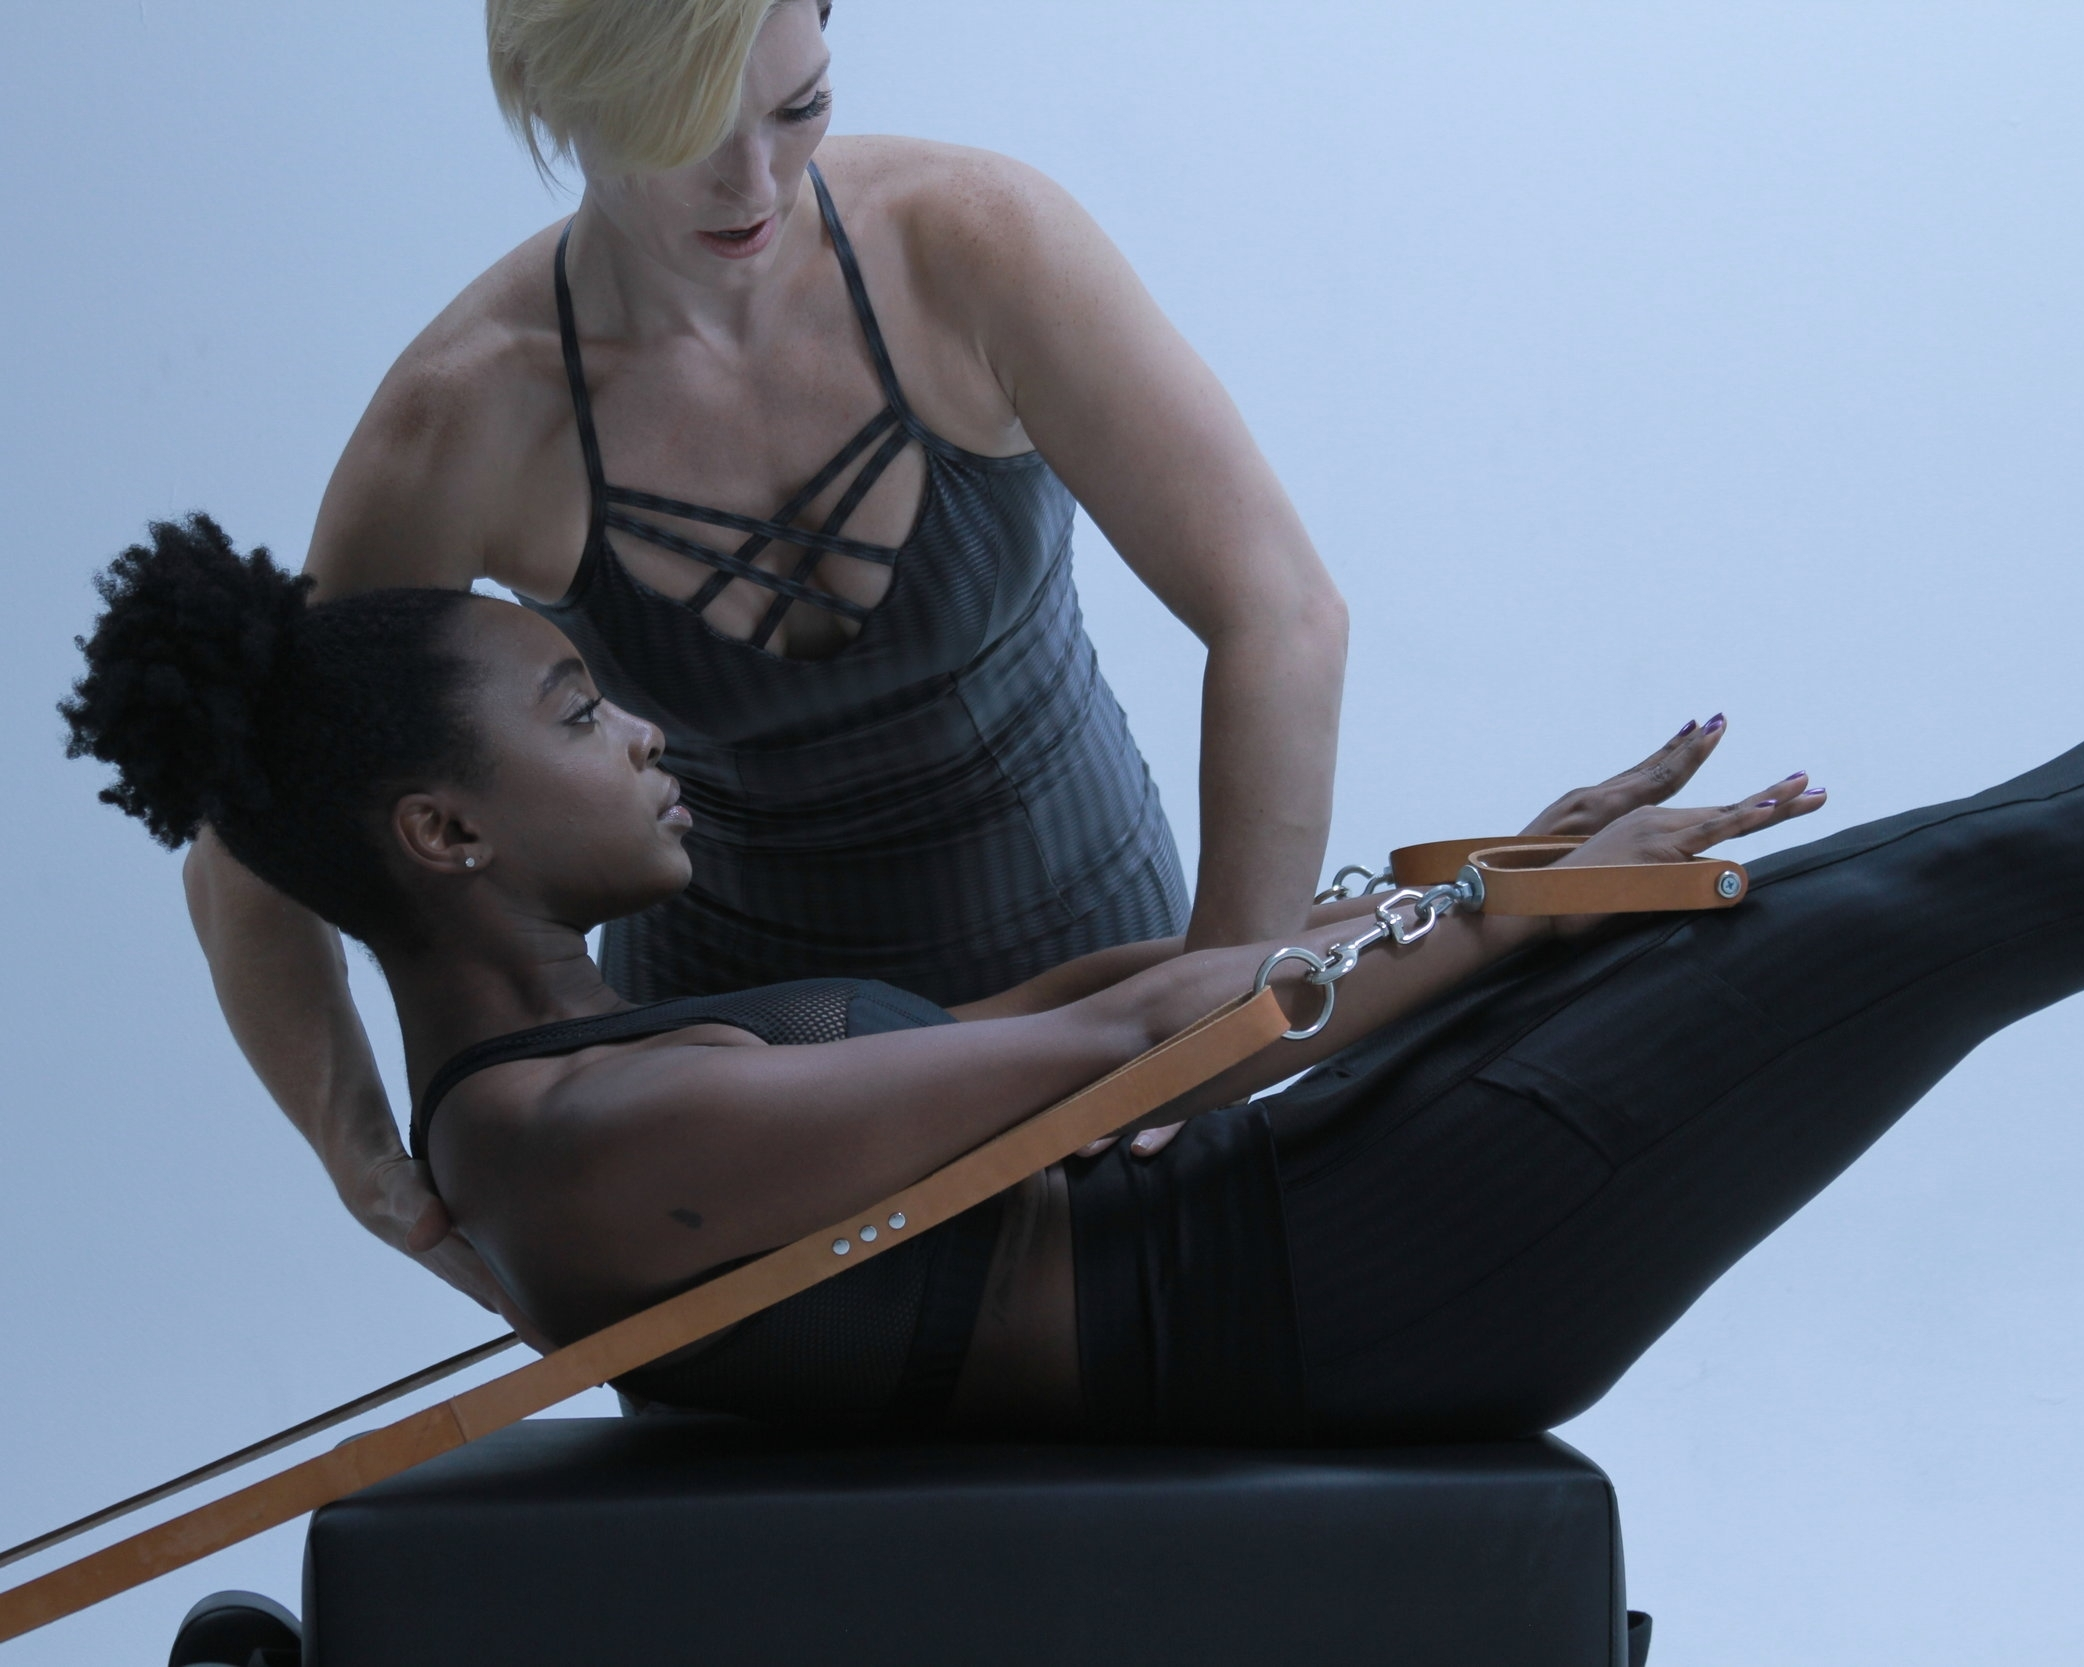 Purchase Pilates Packages 15% OFFCODE:nexafirst - *One time offer